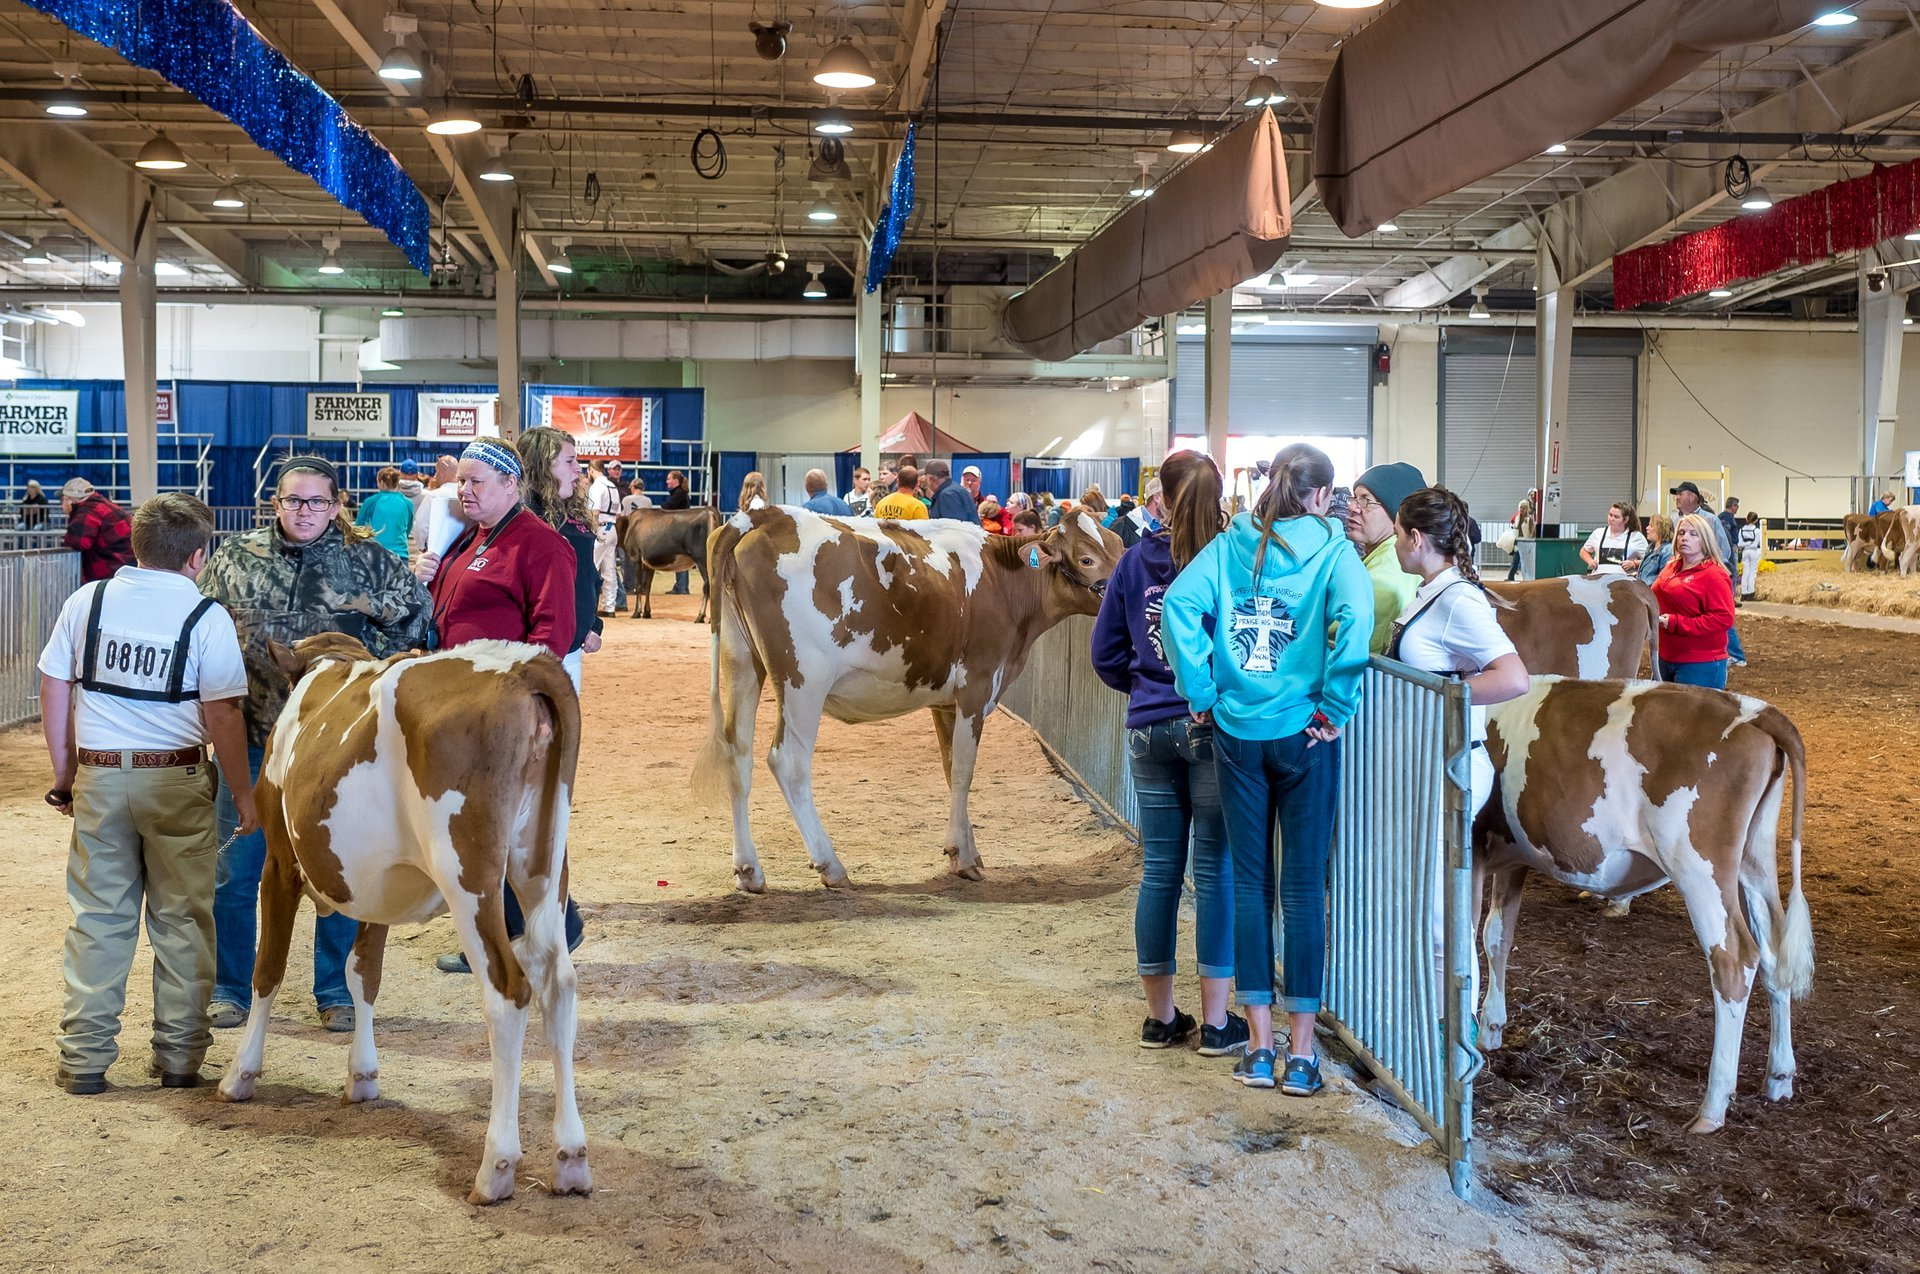 Cows at NC State Fair 2020